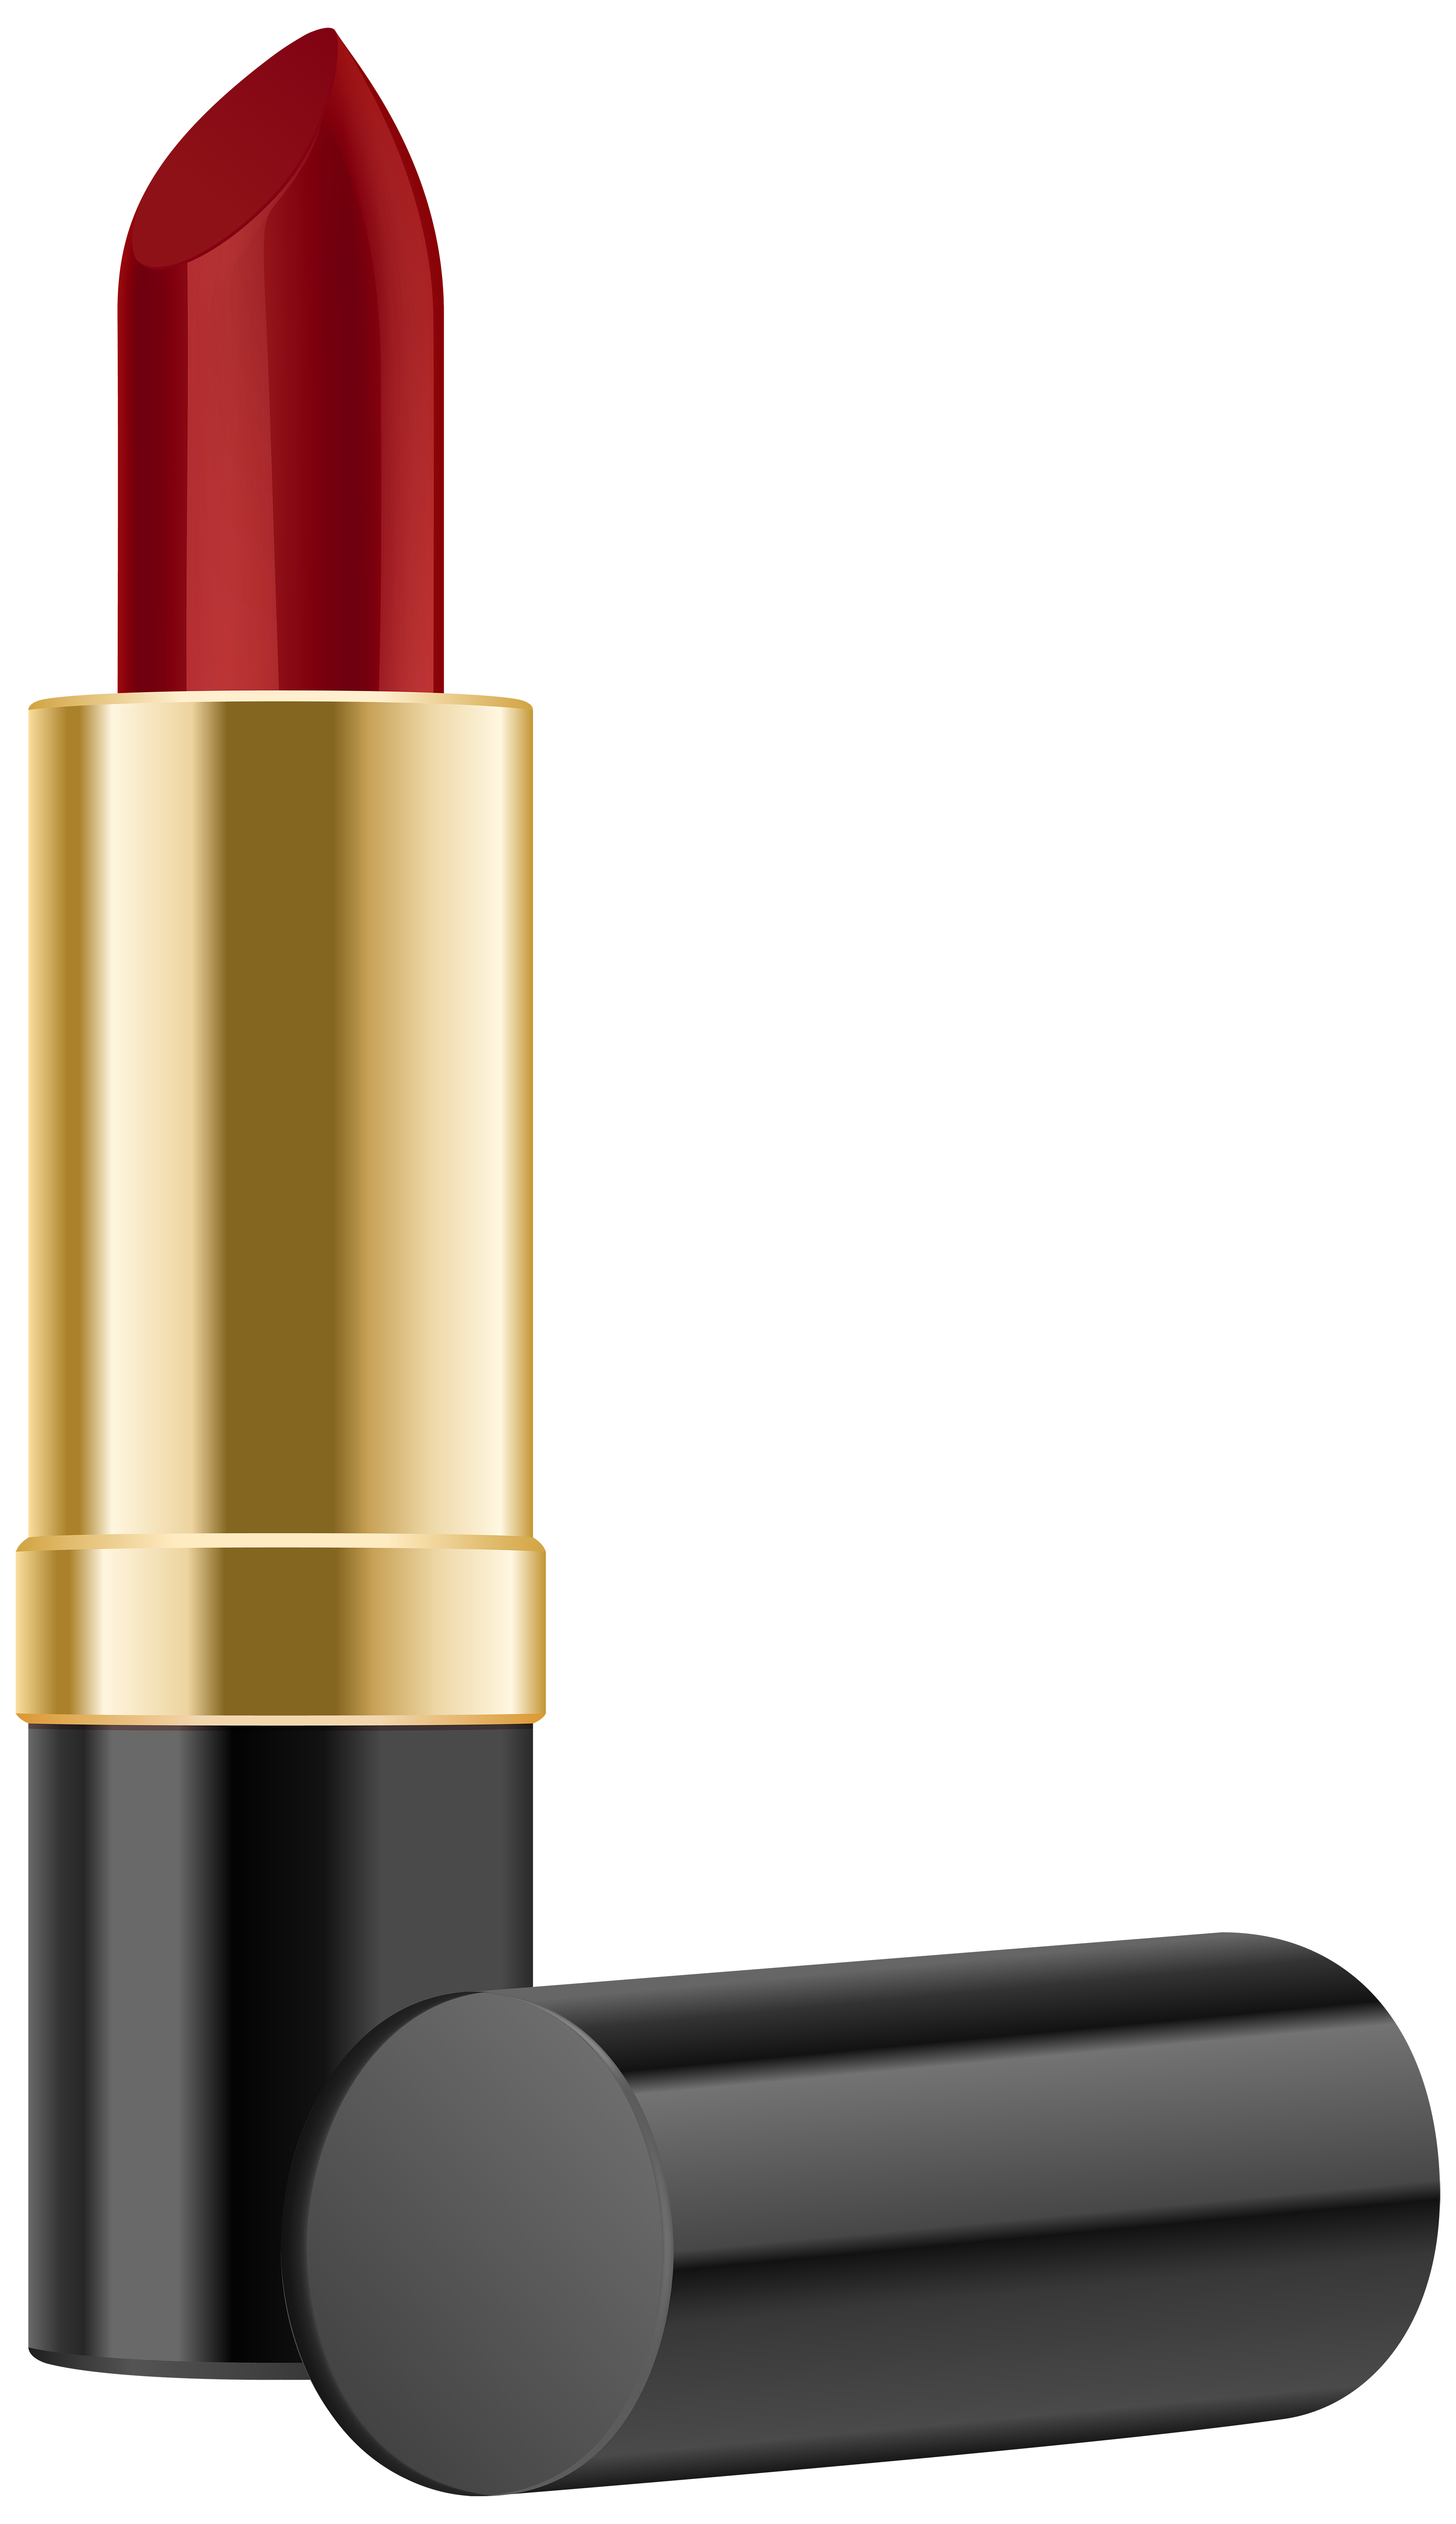 Free clipart lipstick clip library Lipstick PNG Clip Art Image | Gallery Yopriceville - High-Quality ... clip library